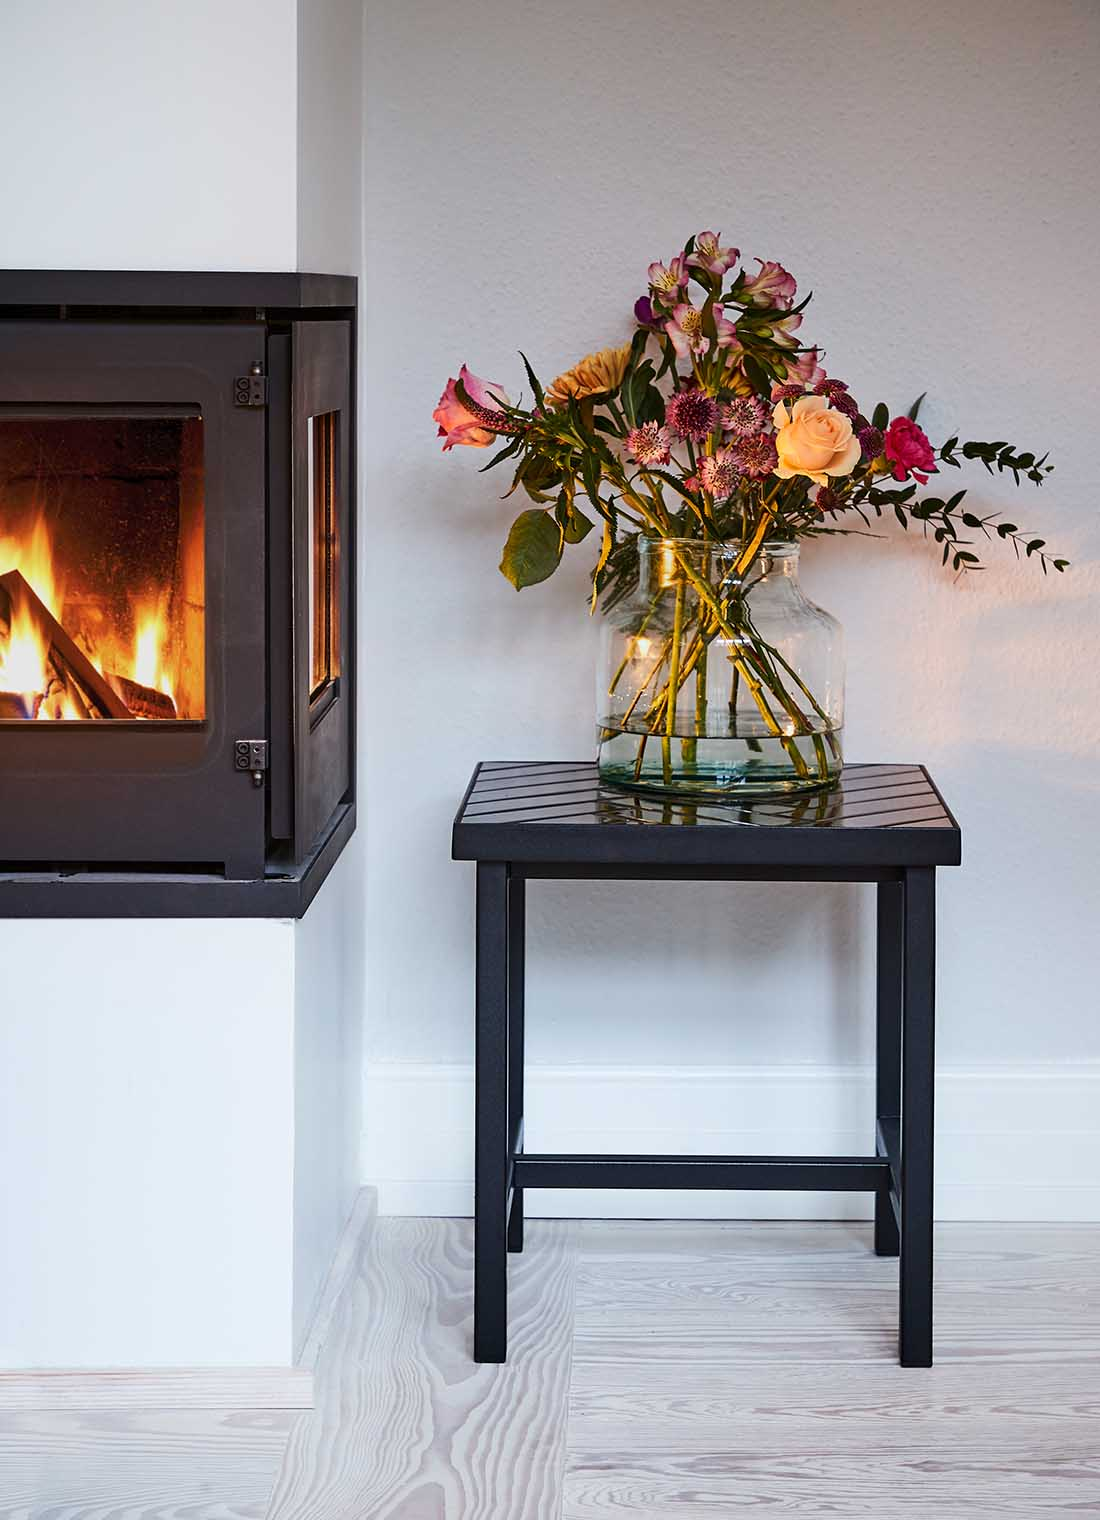 Herringbone Tile sidetable beside fireplace